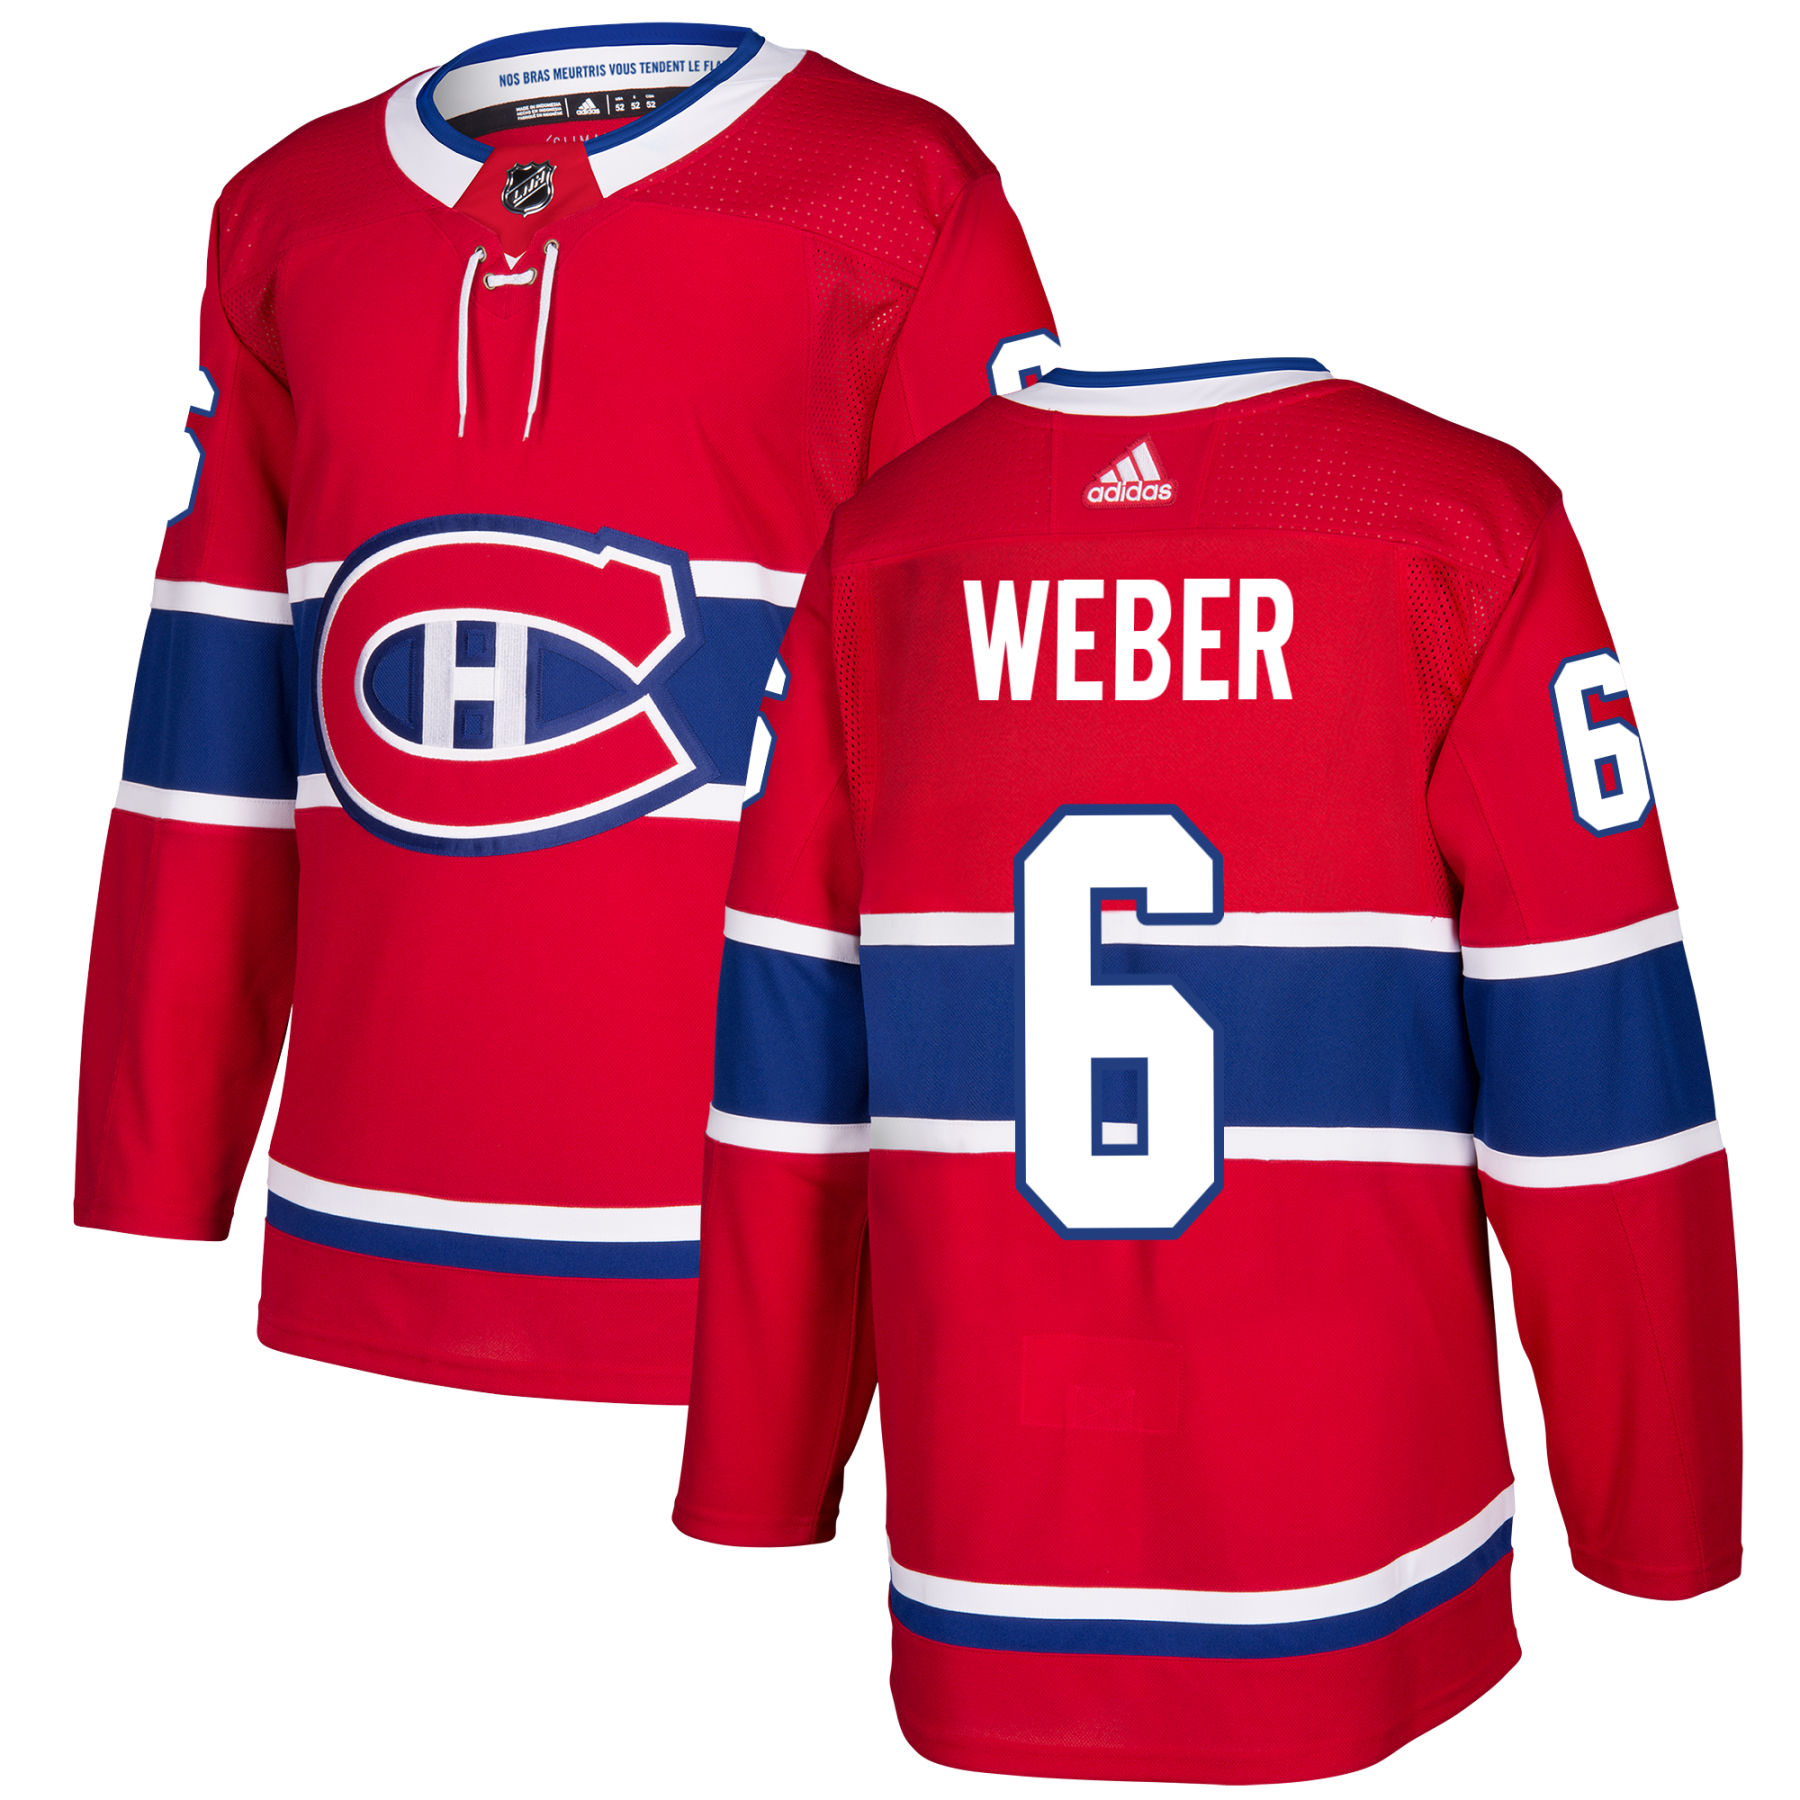 Shea Weber Montreal Canadiens adidas NHL Authentic Pro Home Jersey - Pro  Stitched df538b2ad88